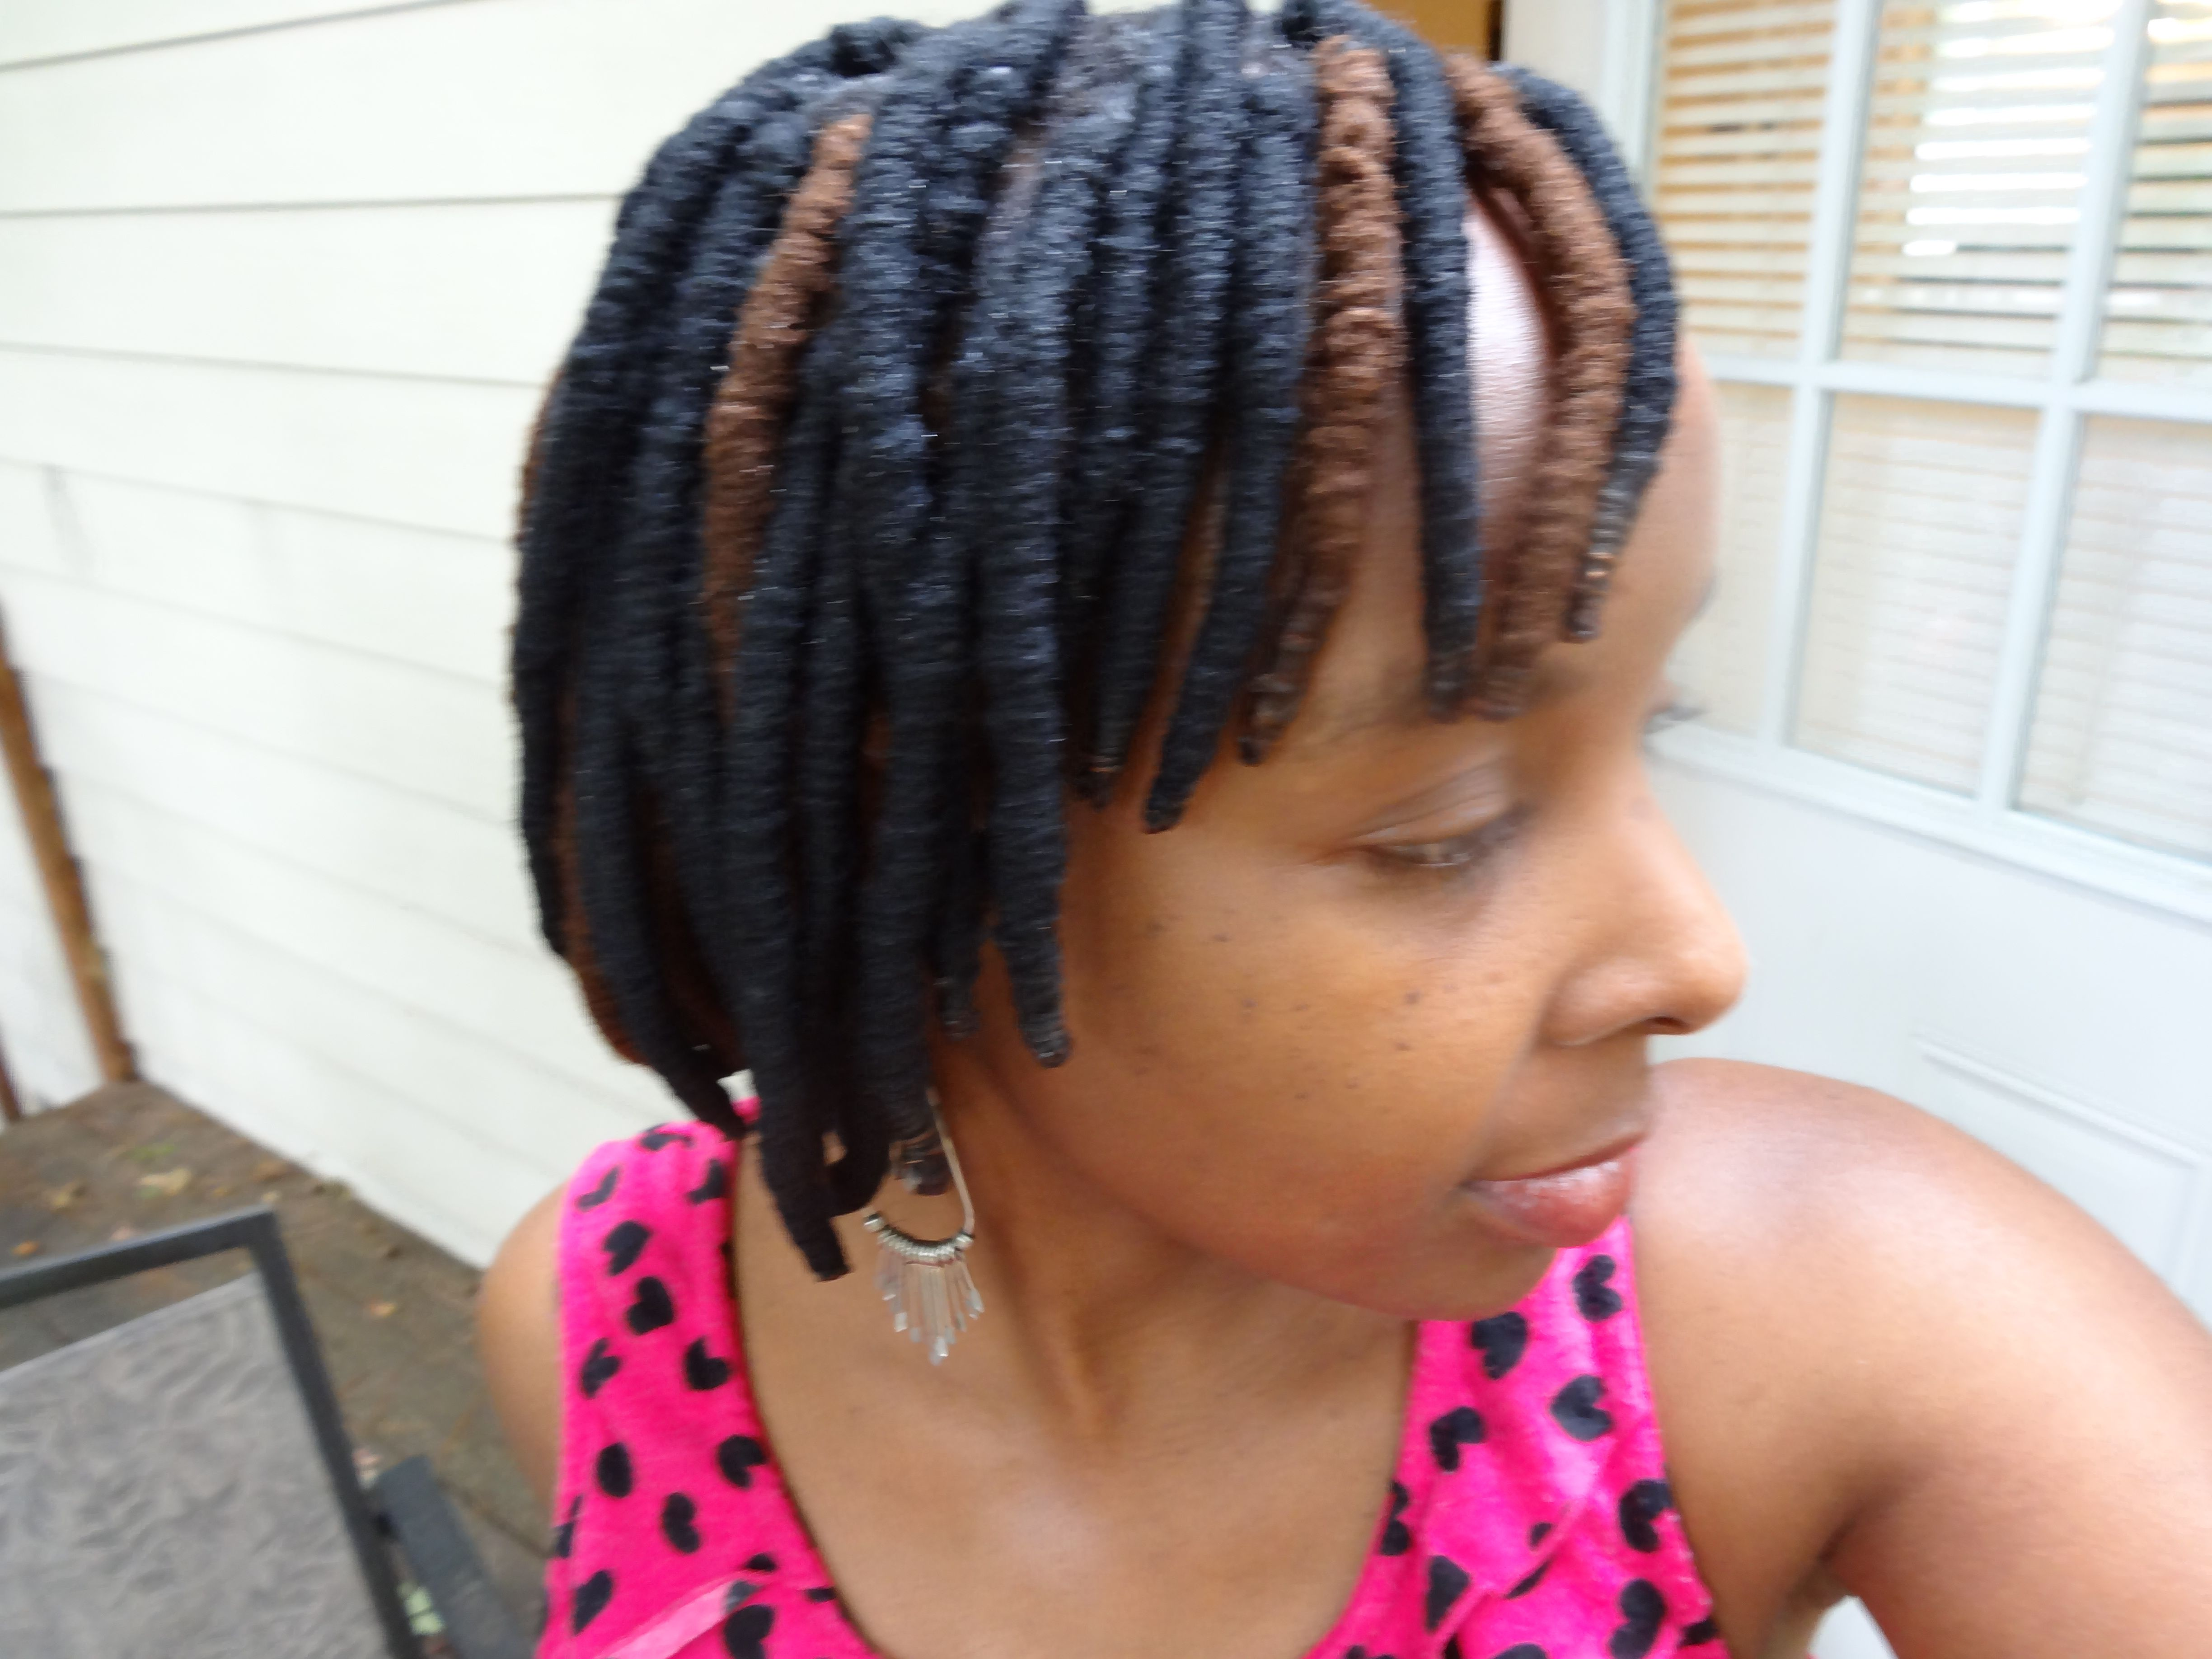 My New HairStyle I Done It is Called Yarn Wraps This style